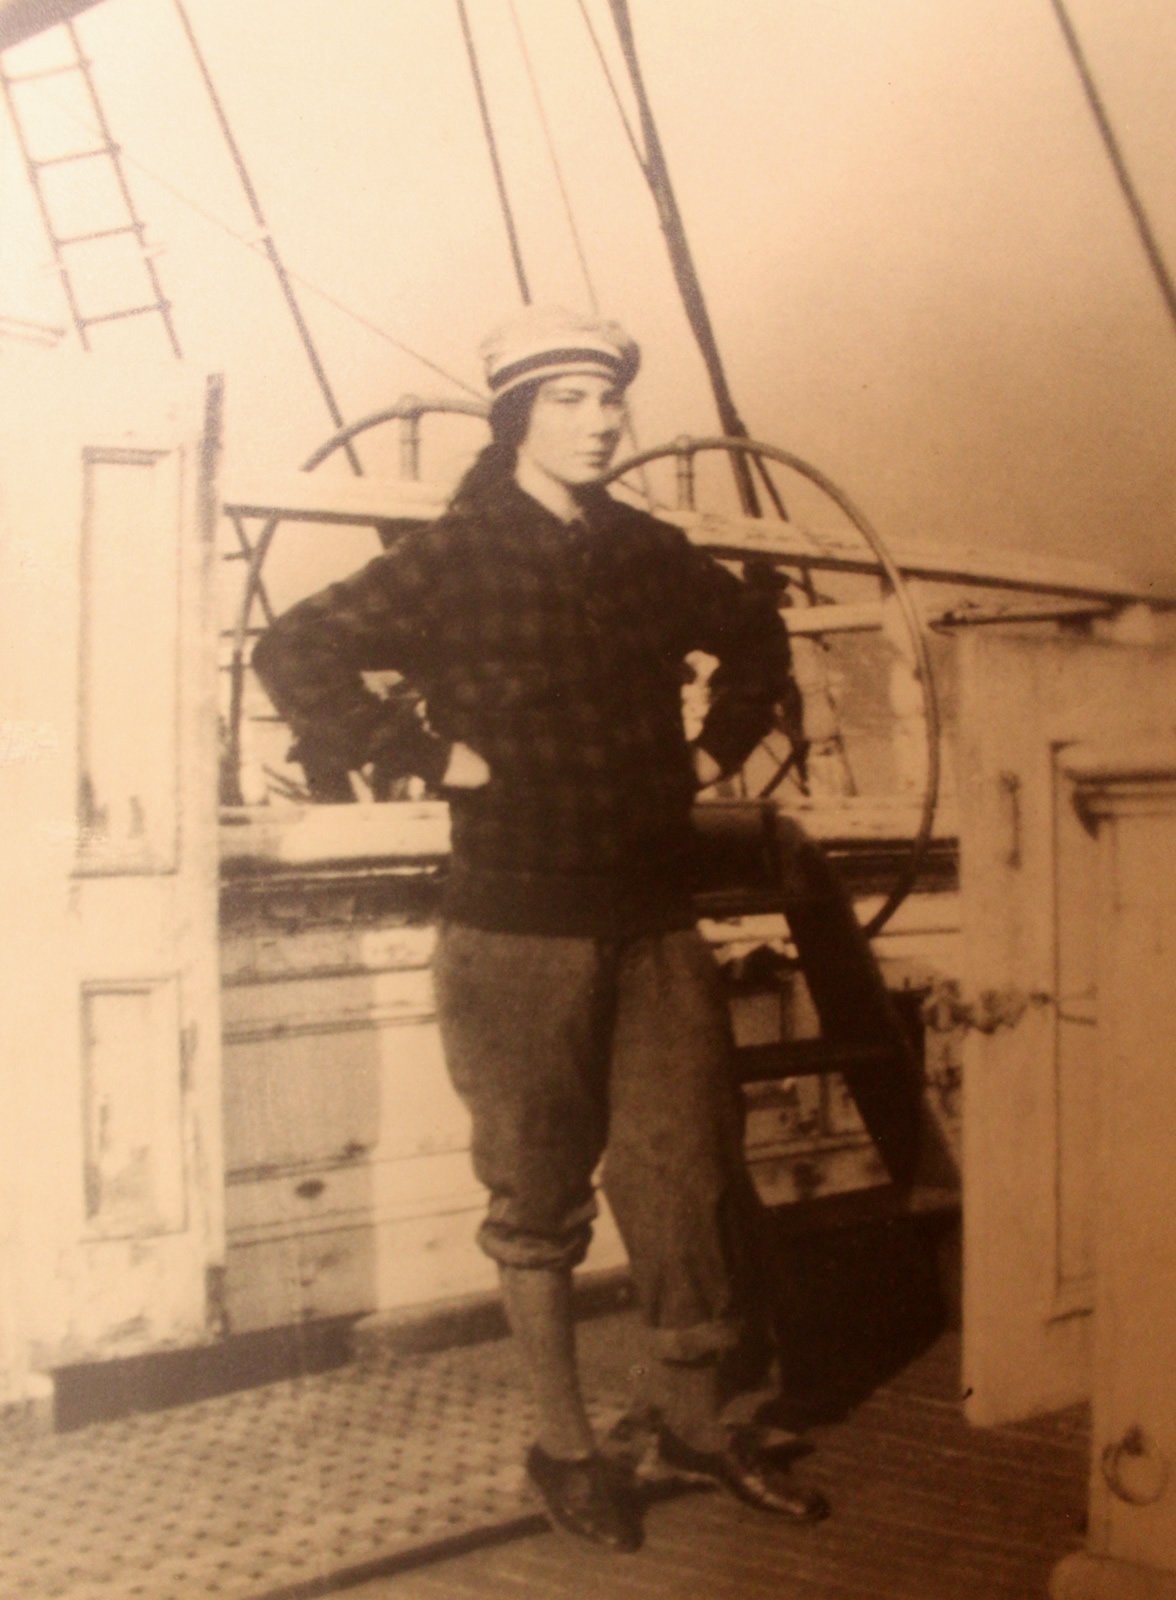 Barbara on the Vigilant, 1929